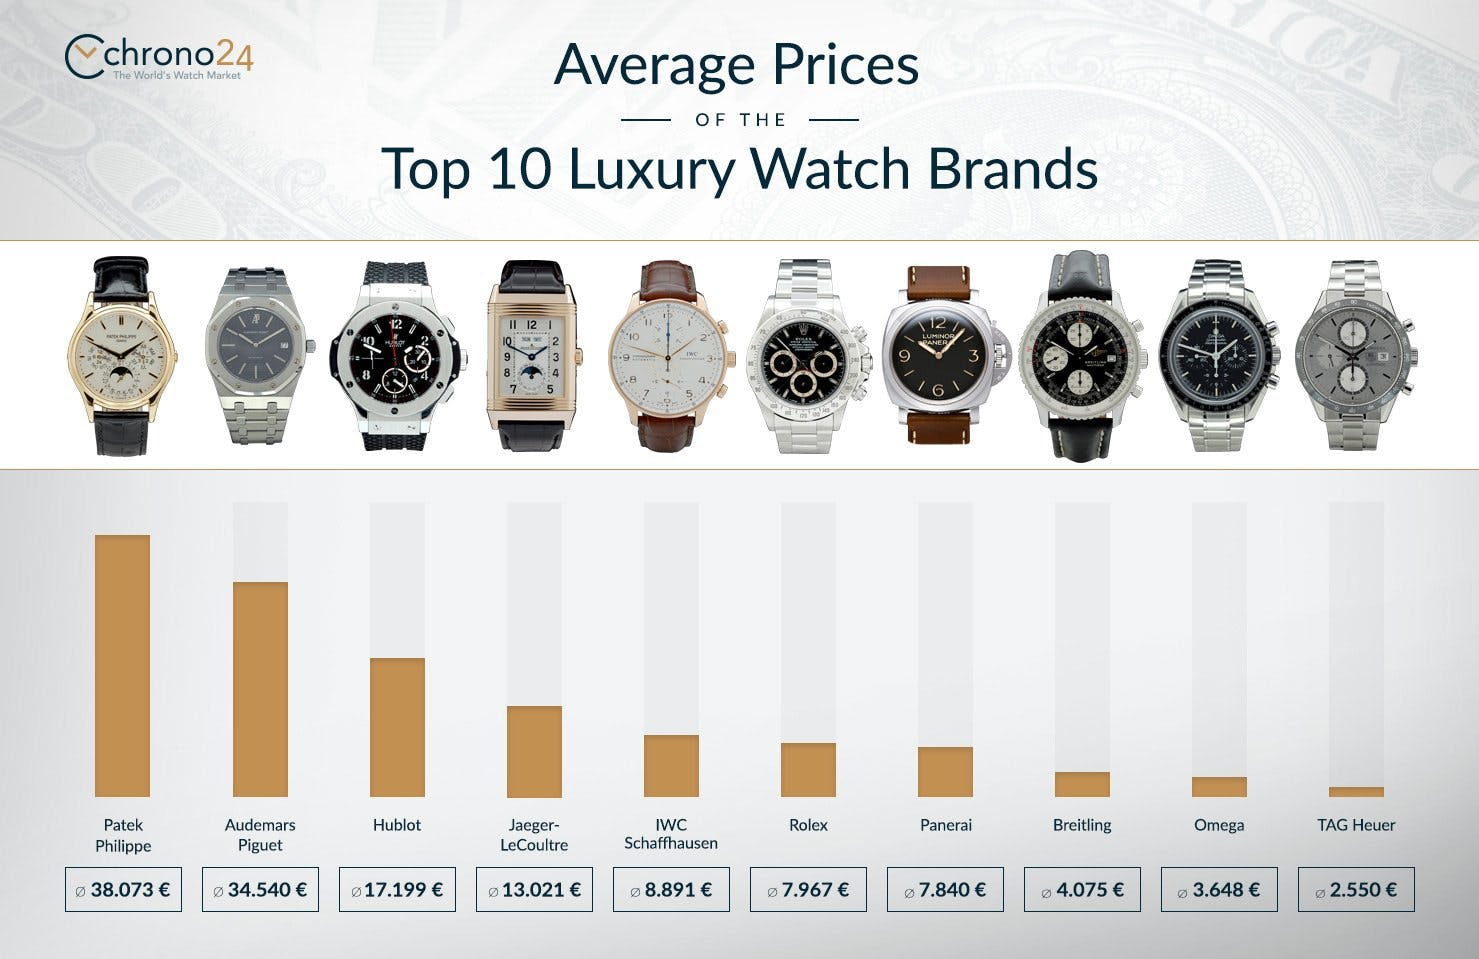 e067c5734339 Watches as investment: average prices of the top 10 luxury watch brands